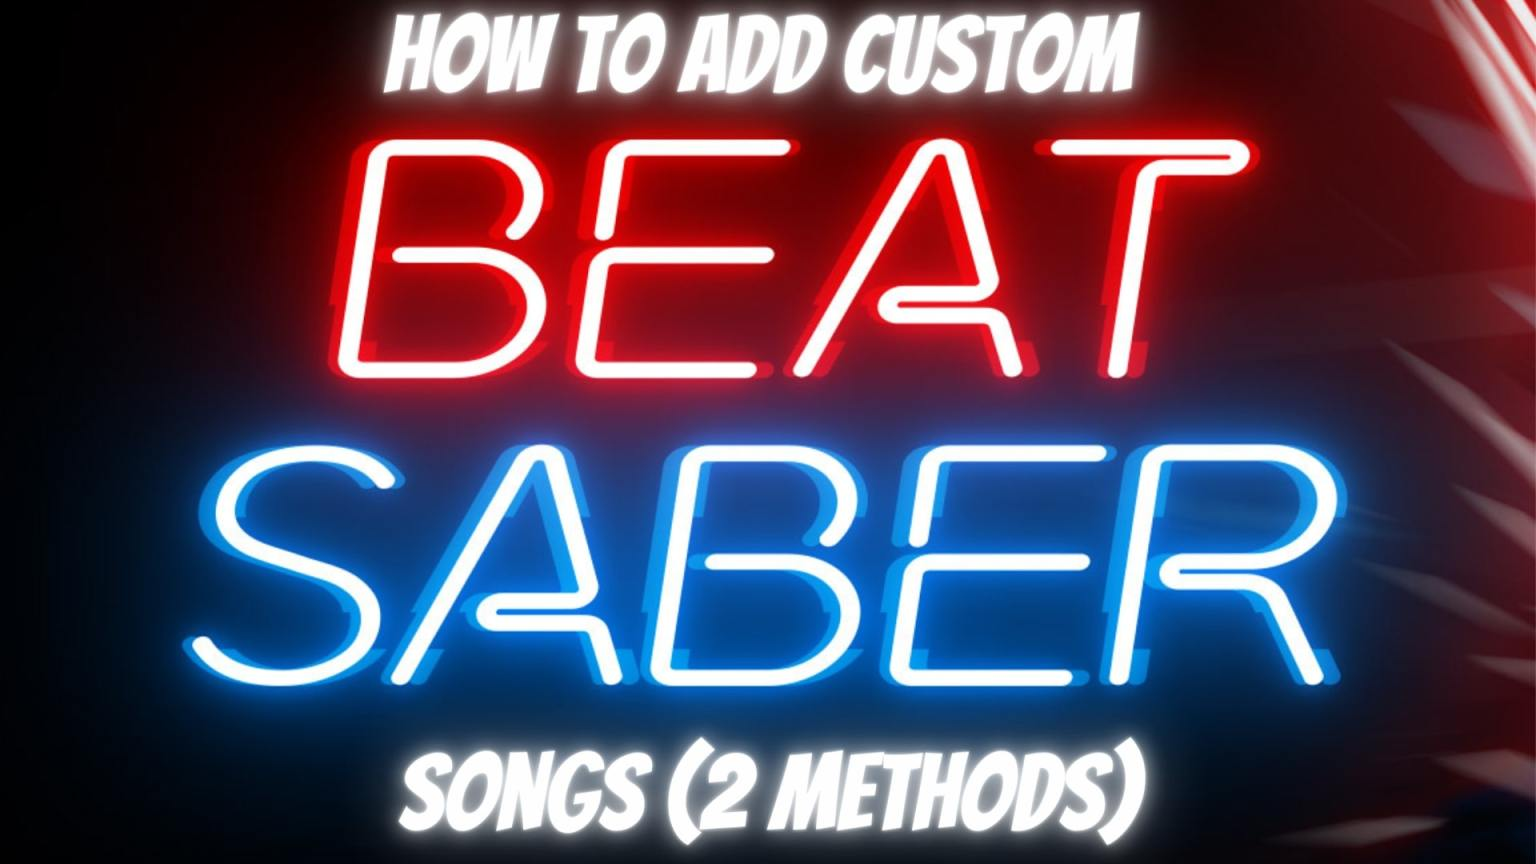 How to install custom beat saber songs